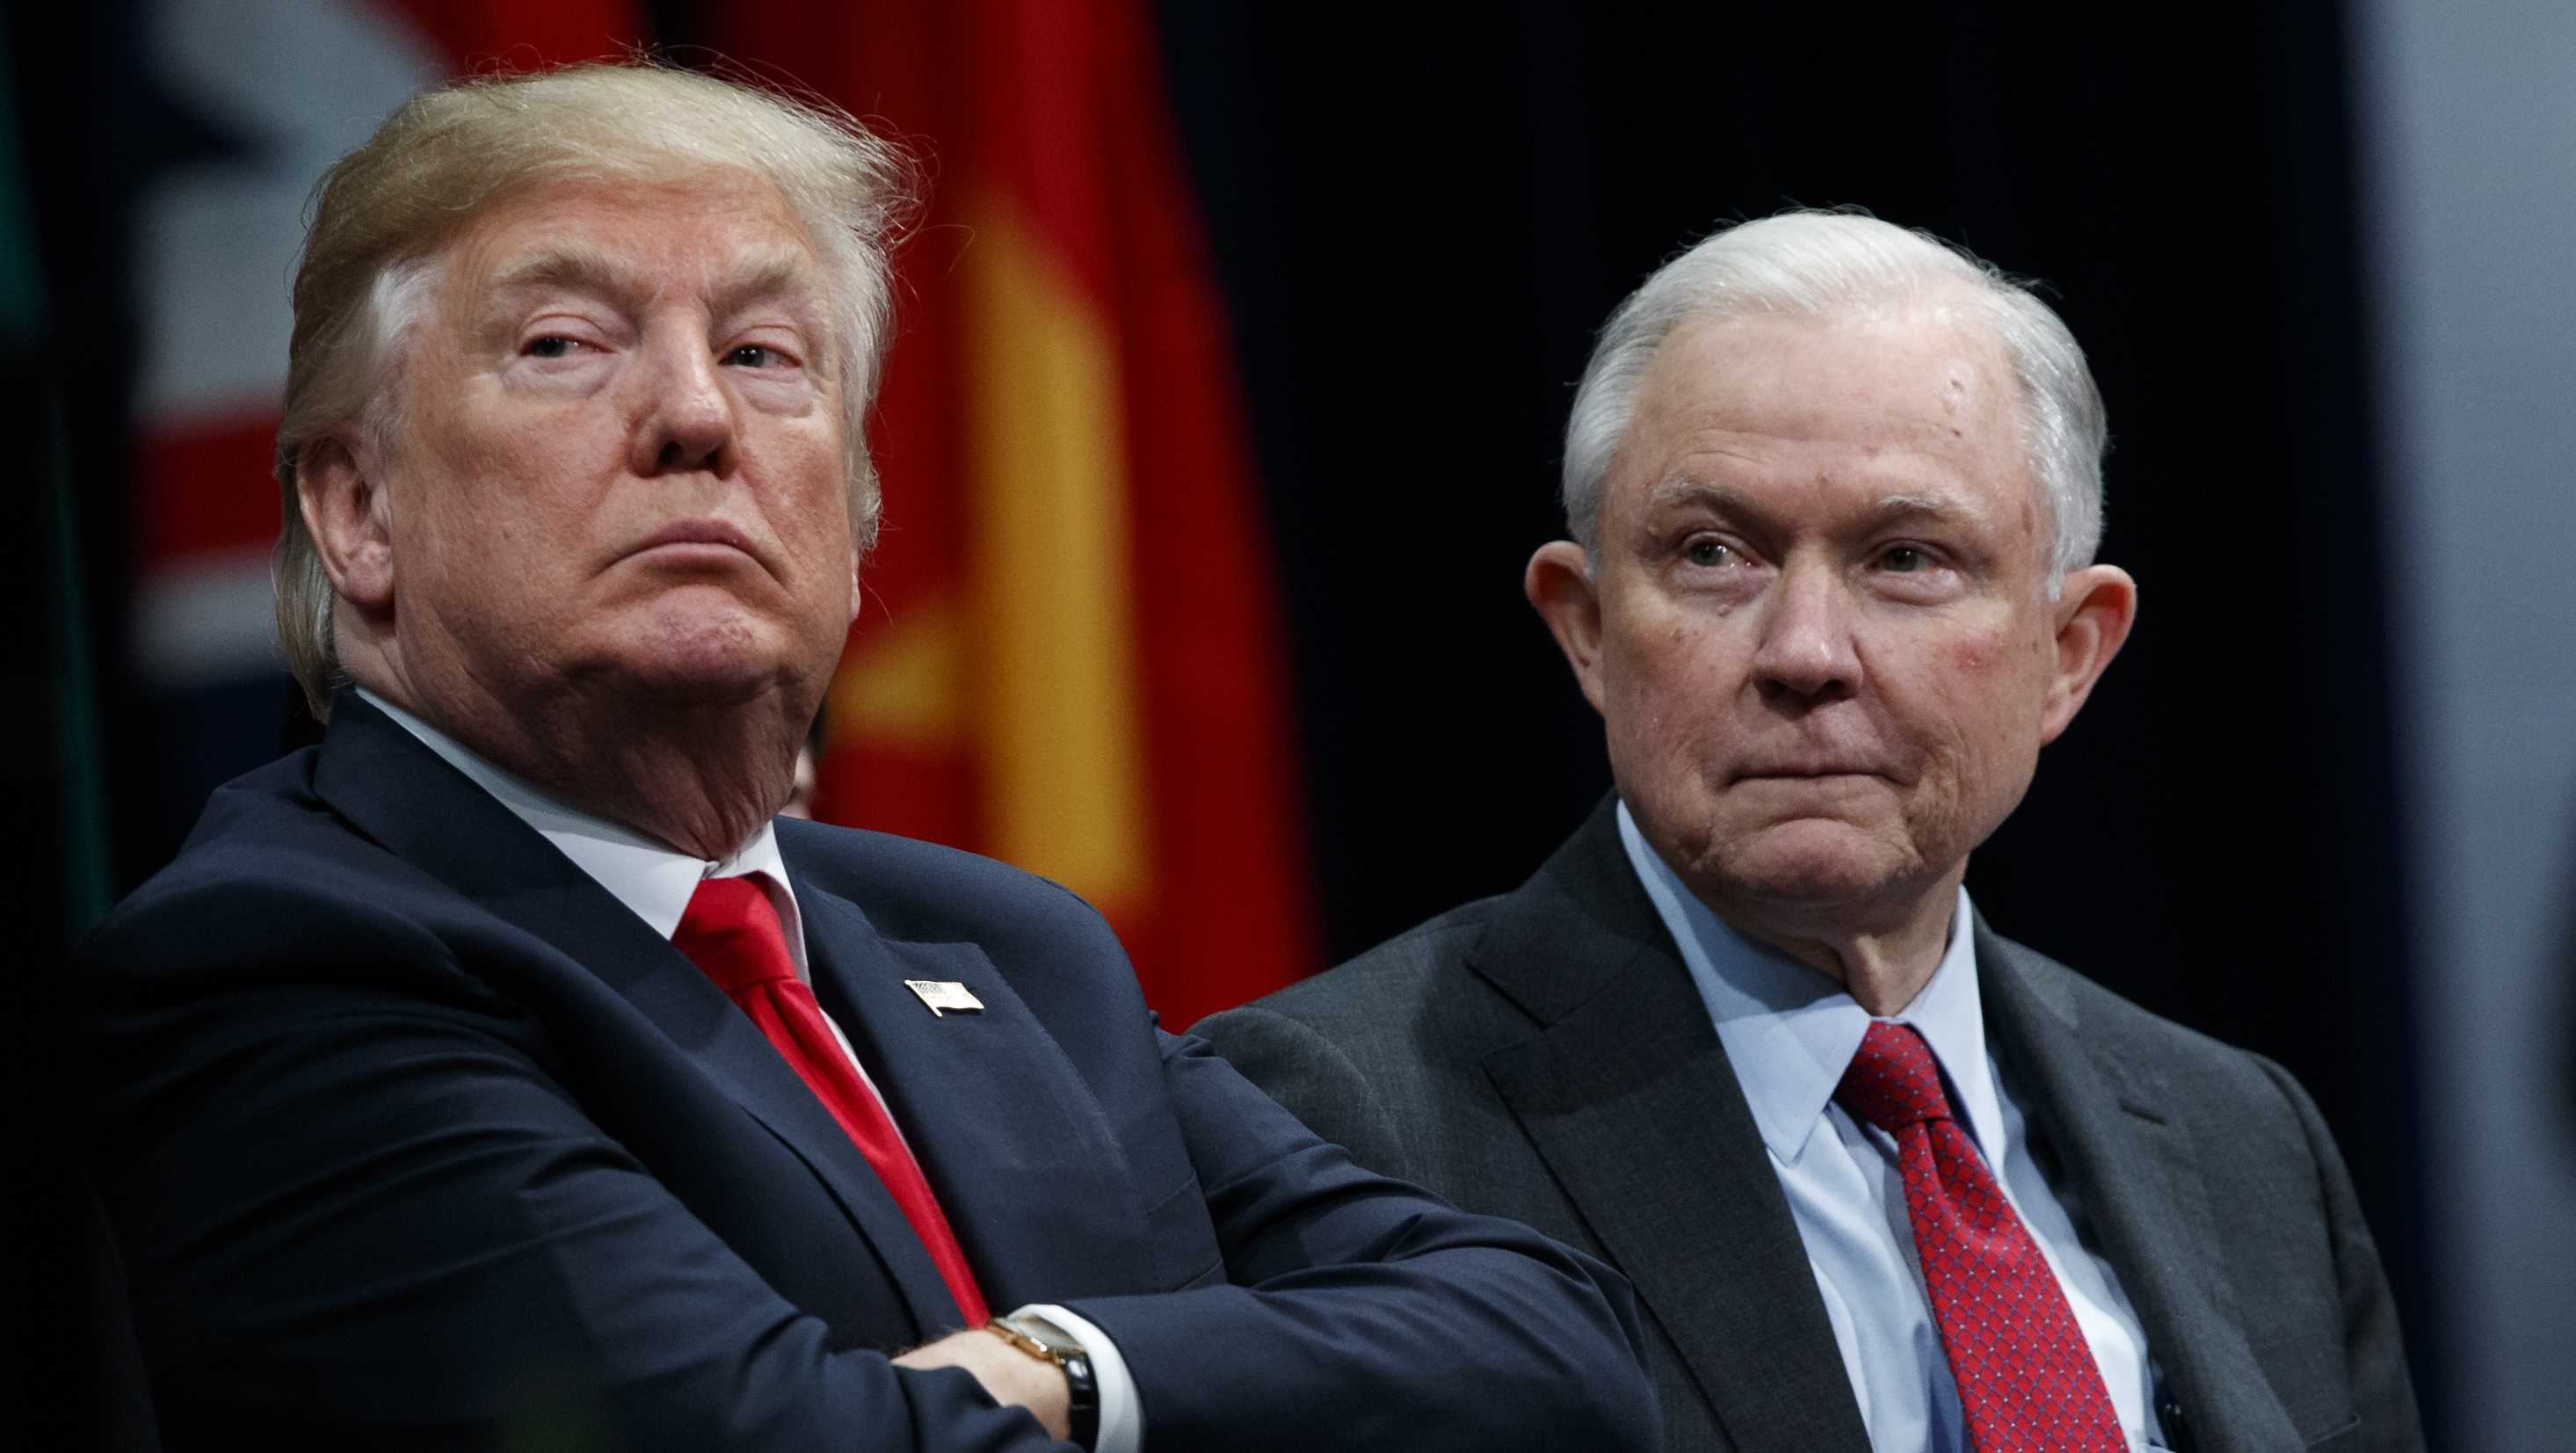 President Trump and U.S. Attorney General Sessions